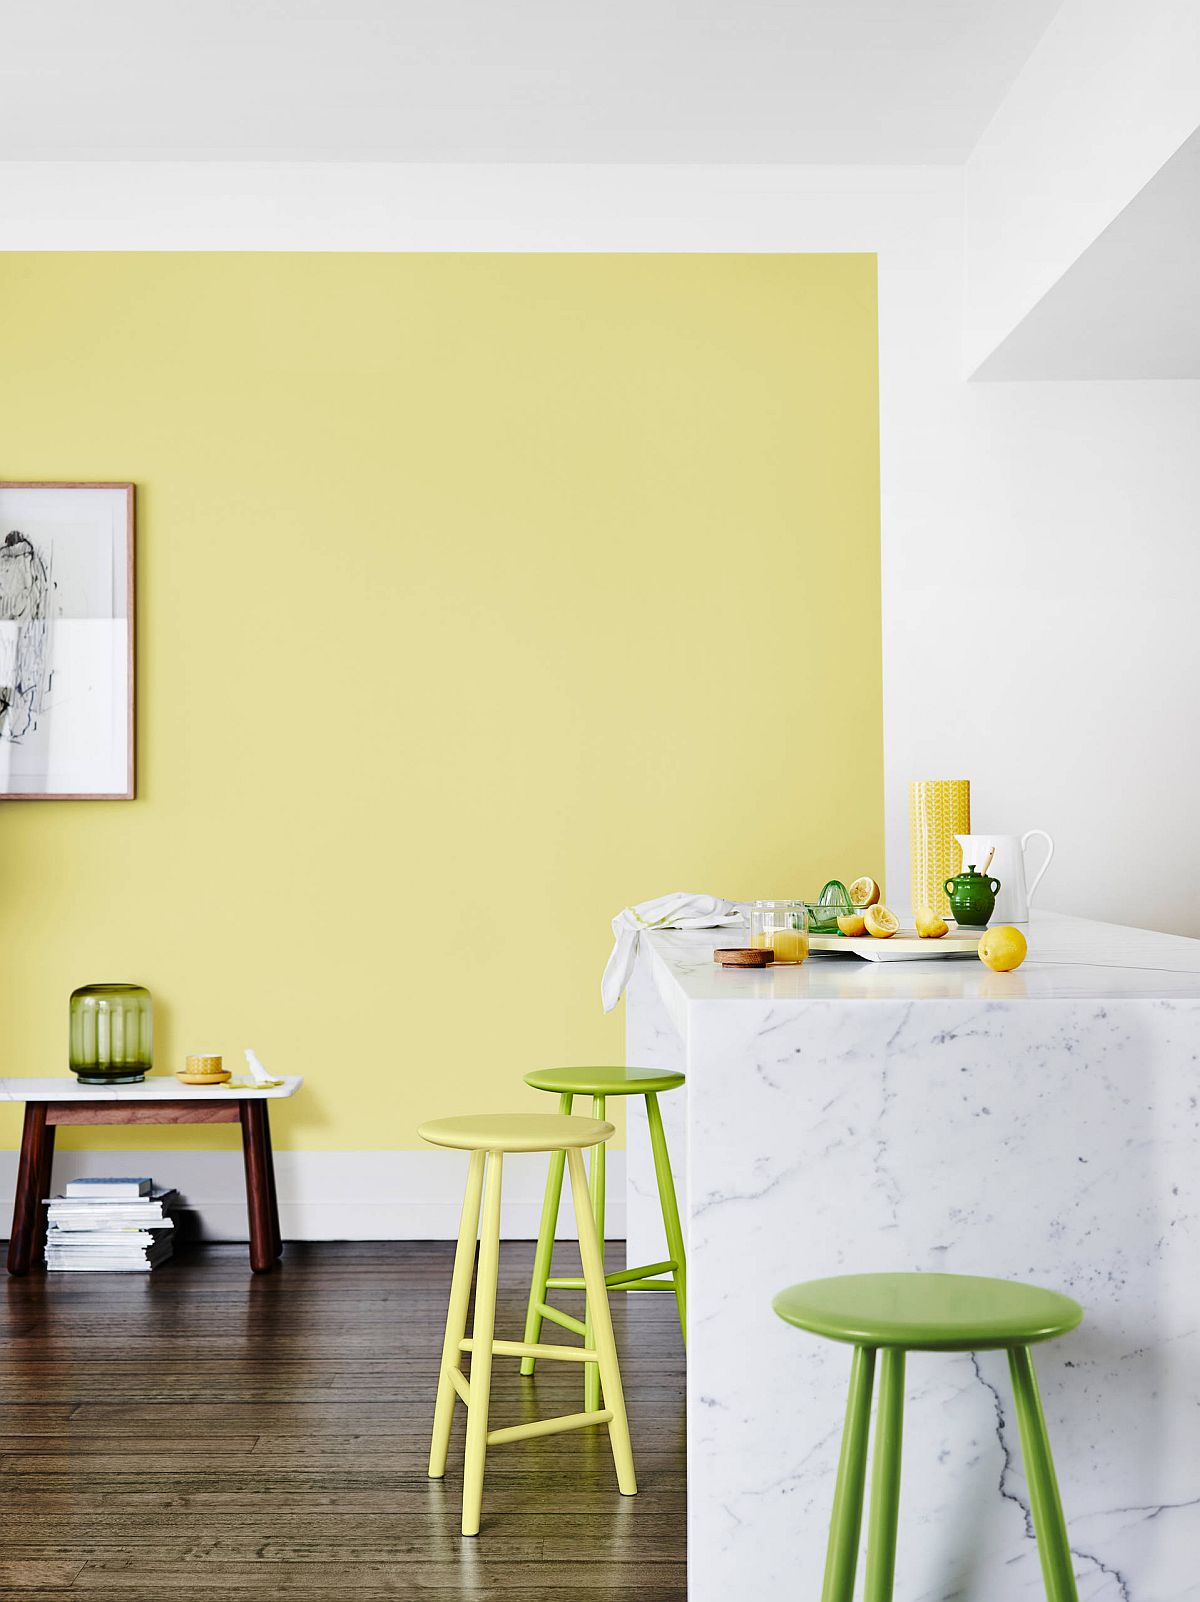 Create-your-own-combination-of-yellow-and-green-in-the-contemporary-kitchen-29844